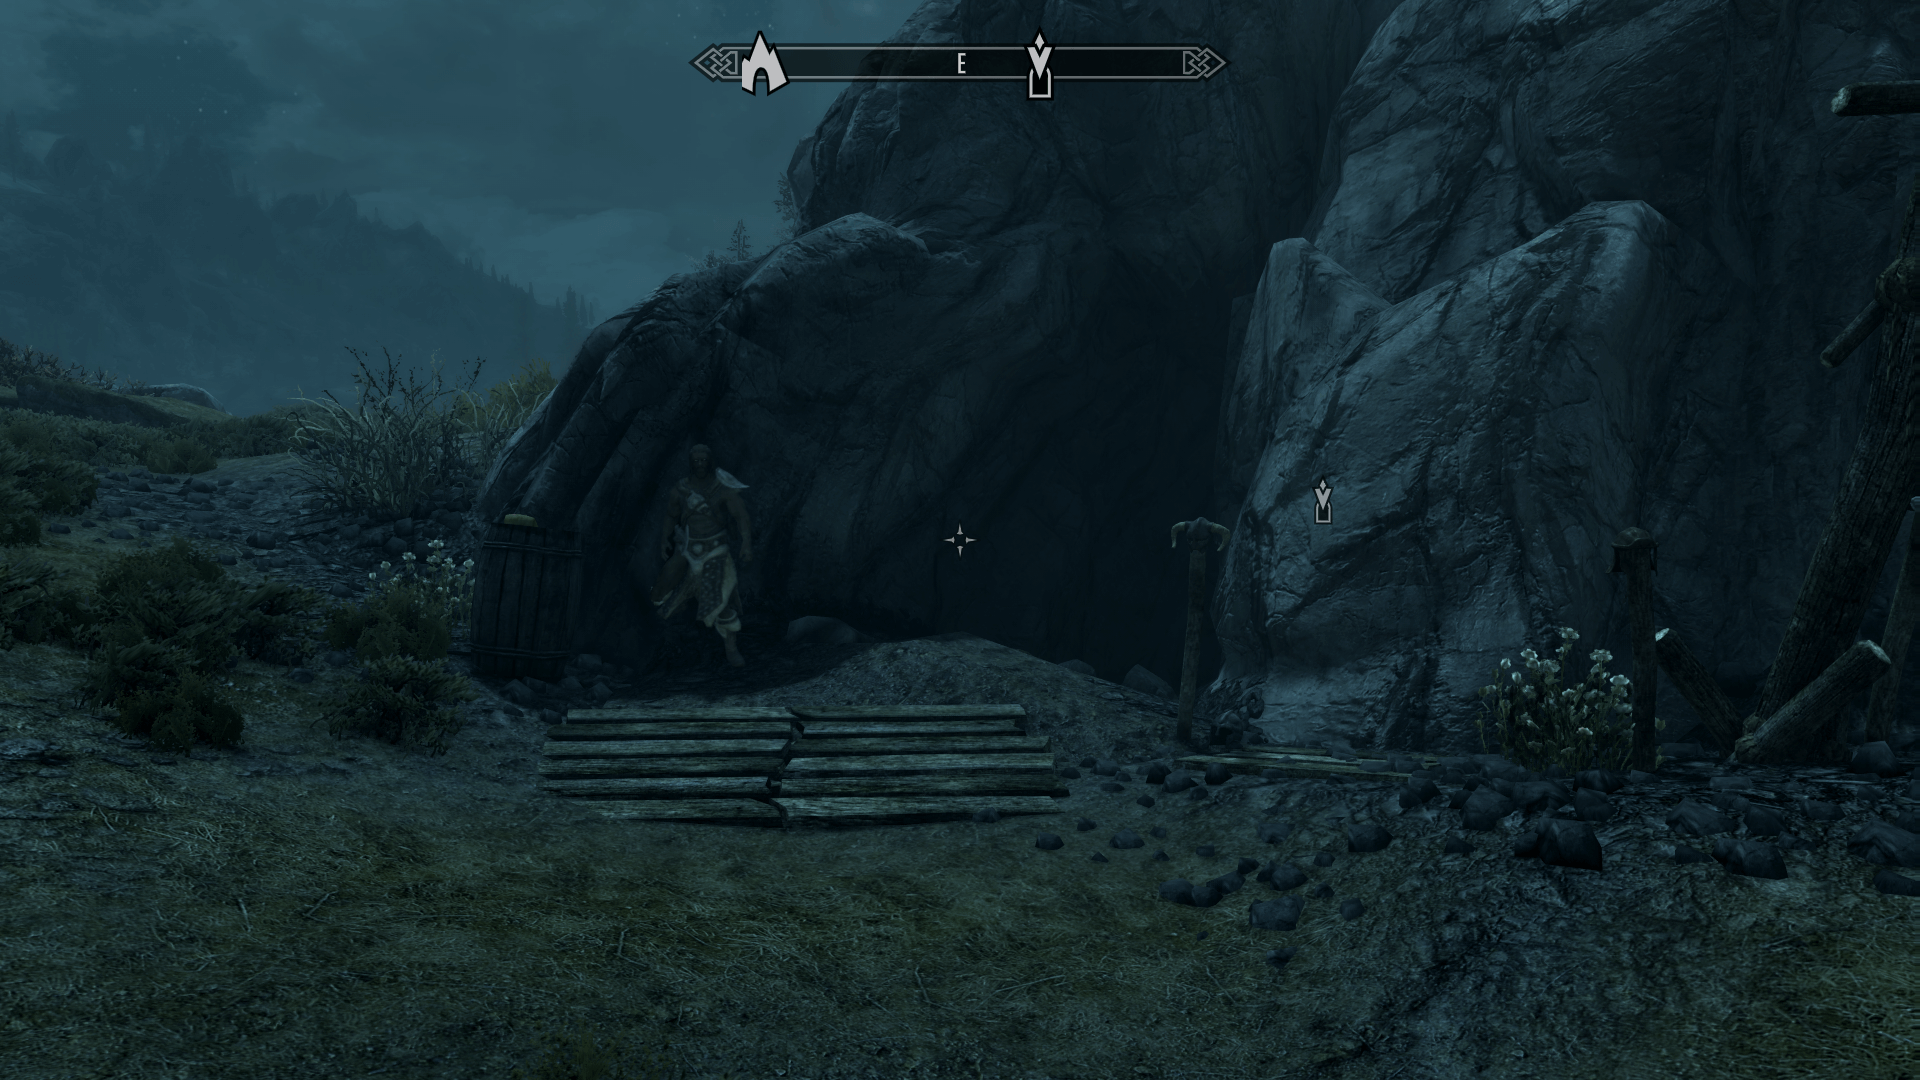 Skyrim In My Time of Need